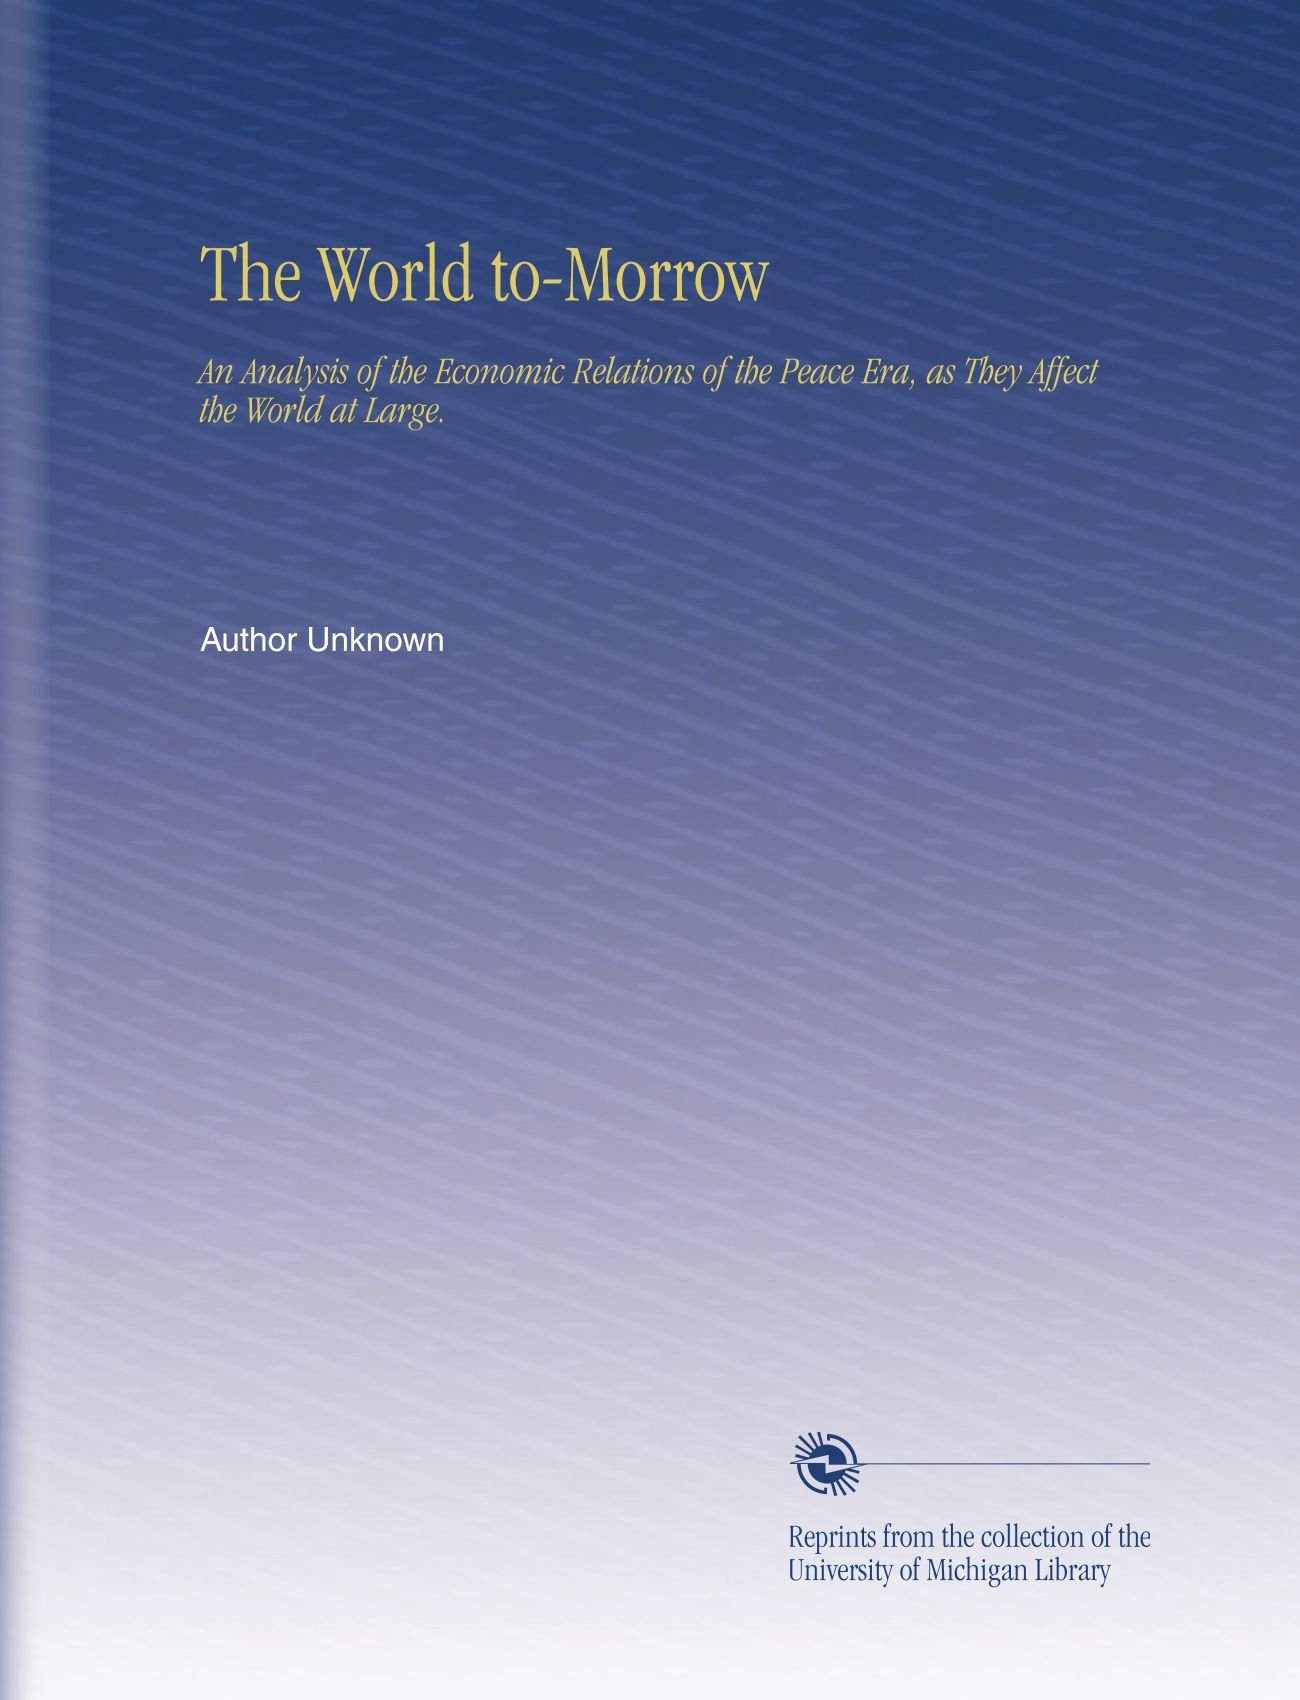 Download The World to-Morrow: An Analysis of the Economic Relations of the Peace Era, as They Affect the World at Large. pdf epub